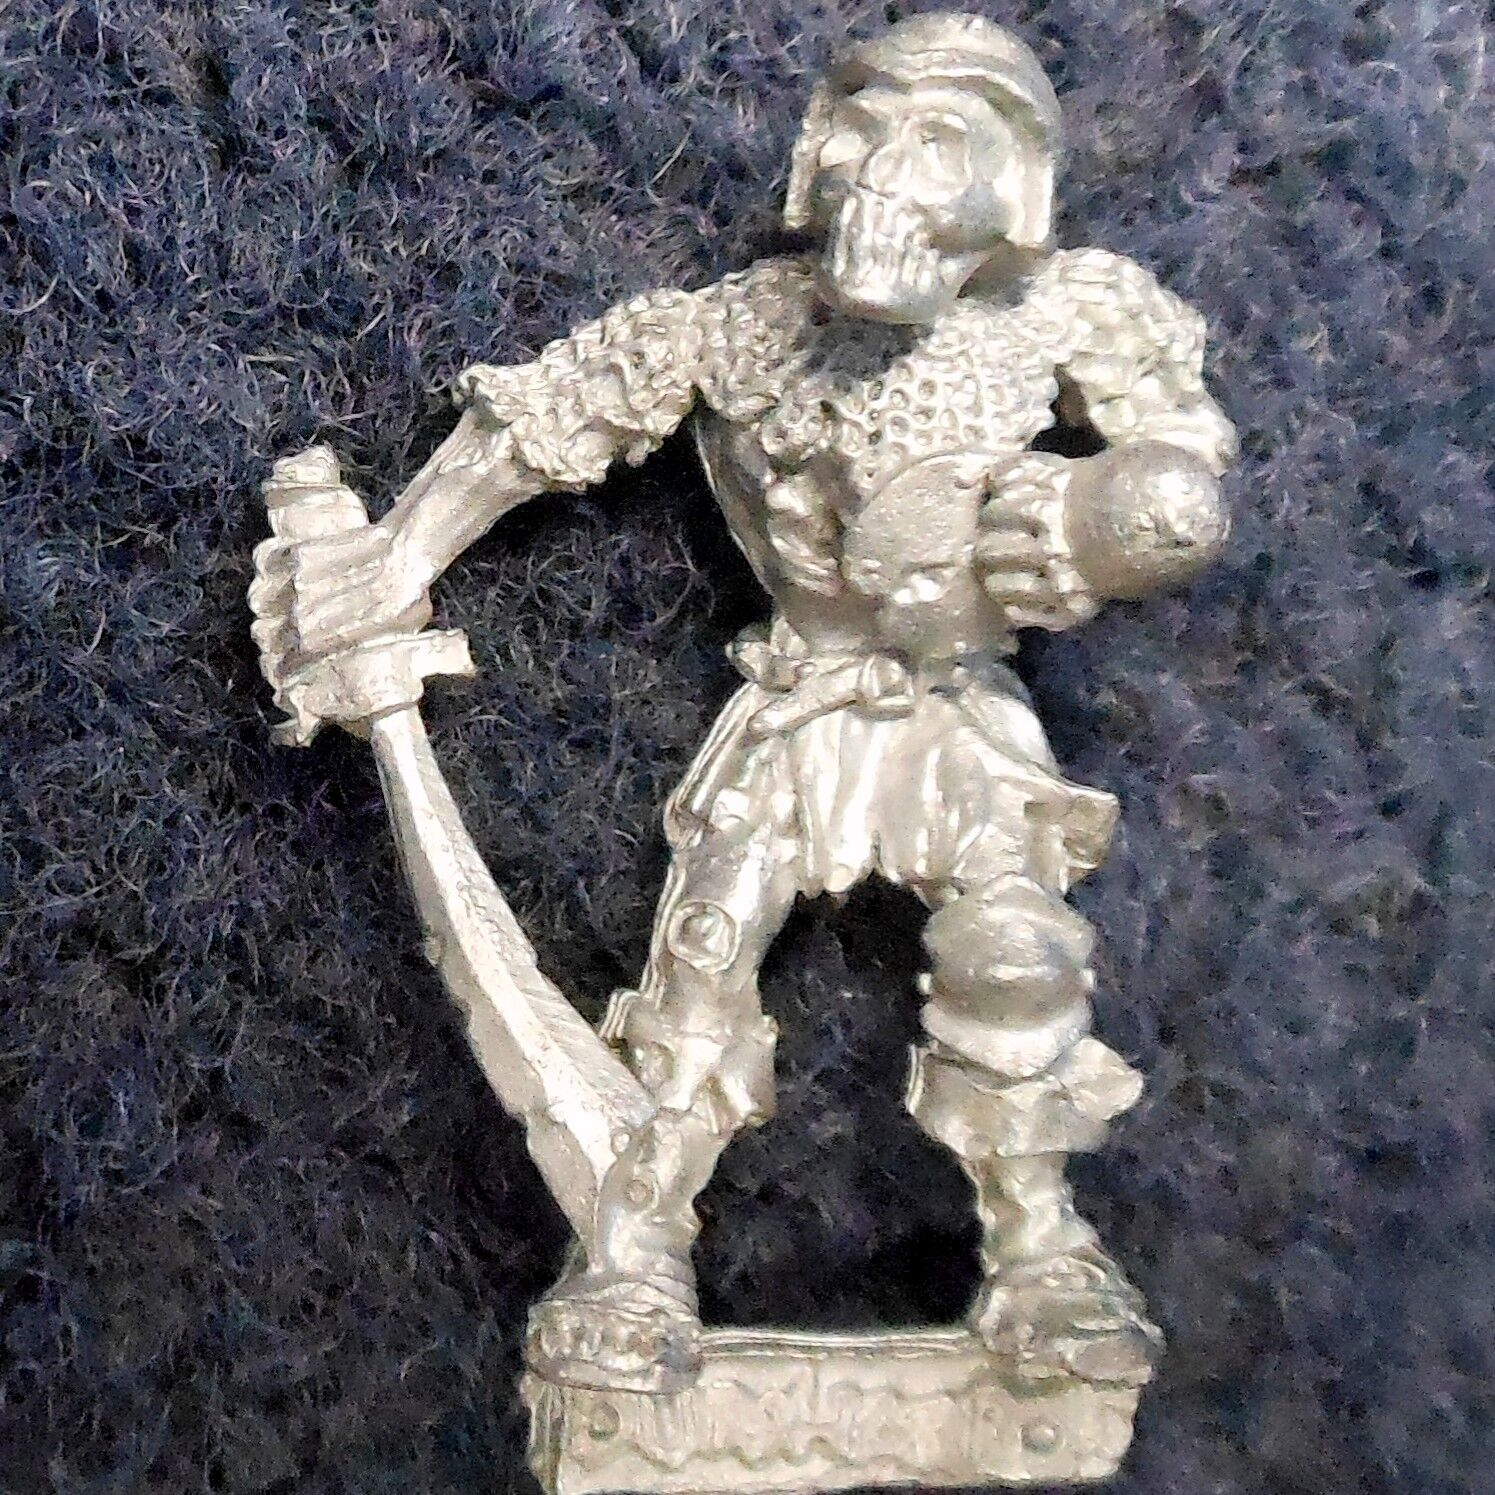 1985 Undead ME72 Sword 3 Dead Men of Dunharrow Lord of the Ring Skeleton Citadel